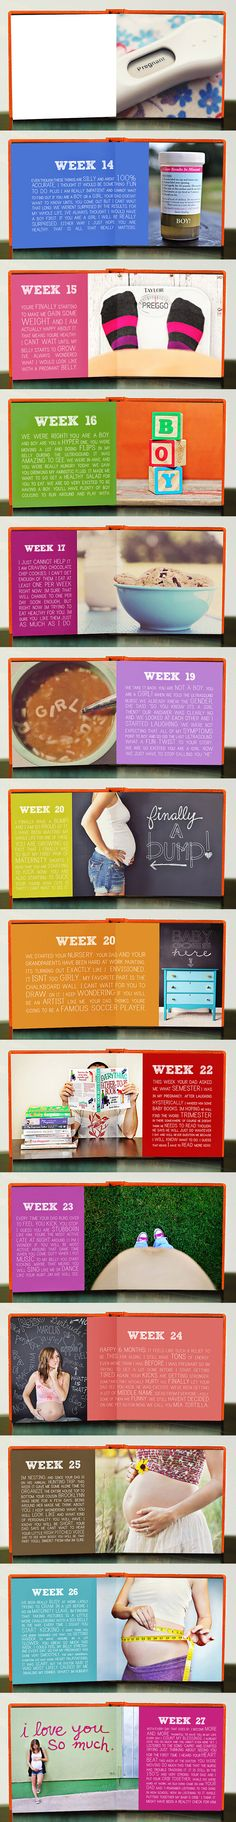 this is the absolute most adorable blog idea I have seen for pregnancy! If I ever had the time or creativity I would do it...